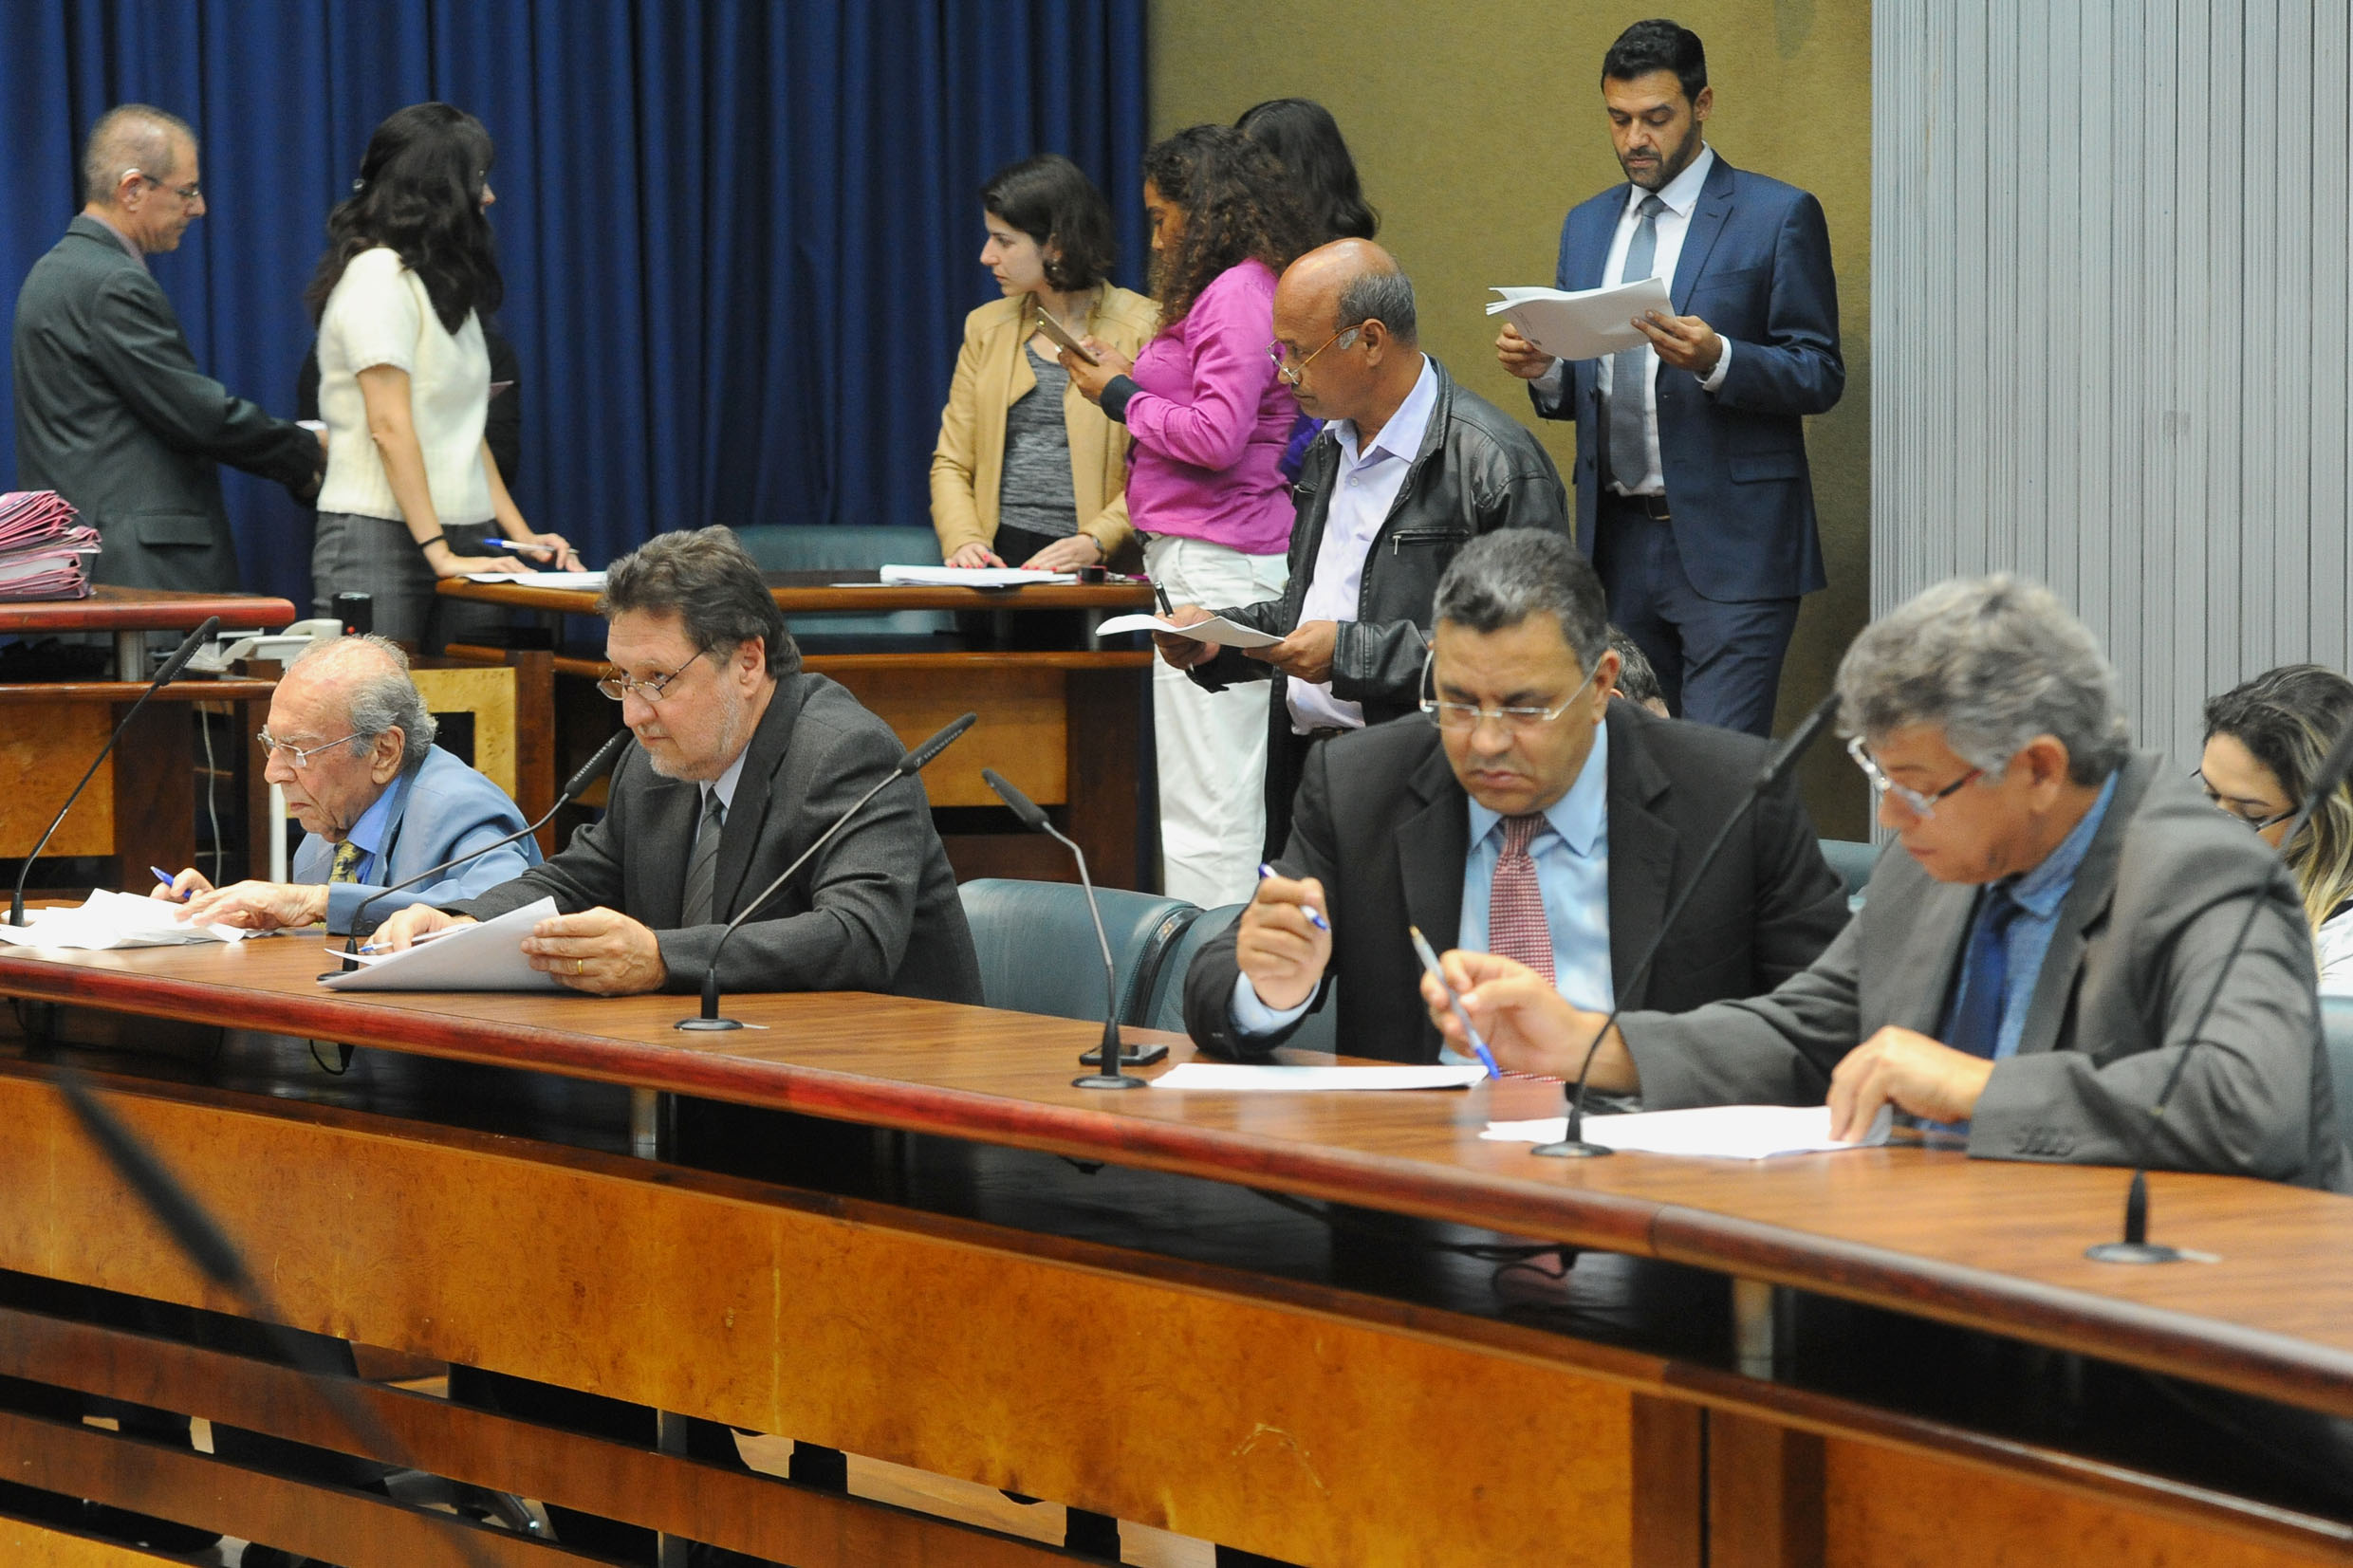 Parlamentares na comissão<a style='float:right' href='https://www3.al.sp.gov.br/repositorio/noticia/N-11-2018/fg227799.jpg' target=_blank><img src='/_img/material-file-download-white.png' width='14px' alt='Clique para baixar a imagem'></a>